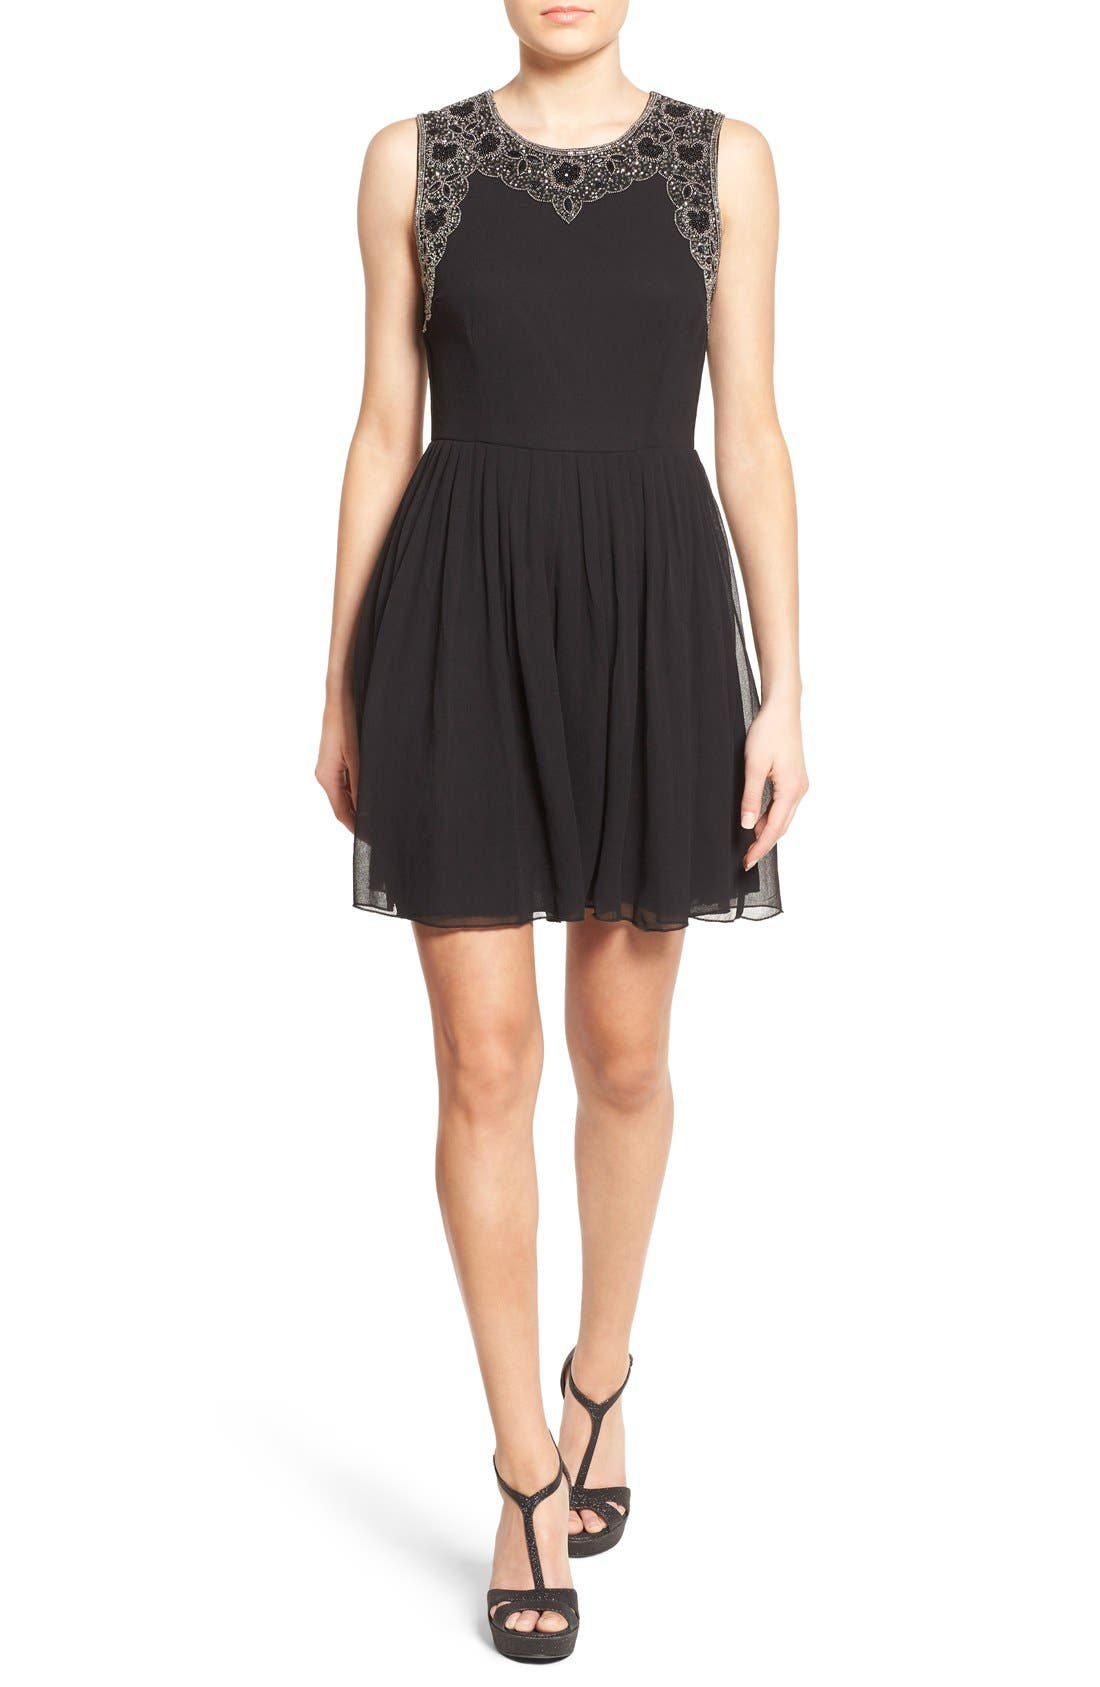 Main Image - Lace & Beads 'Becky' Embellished Skater Dress